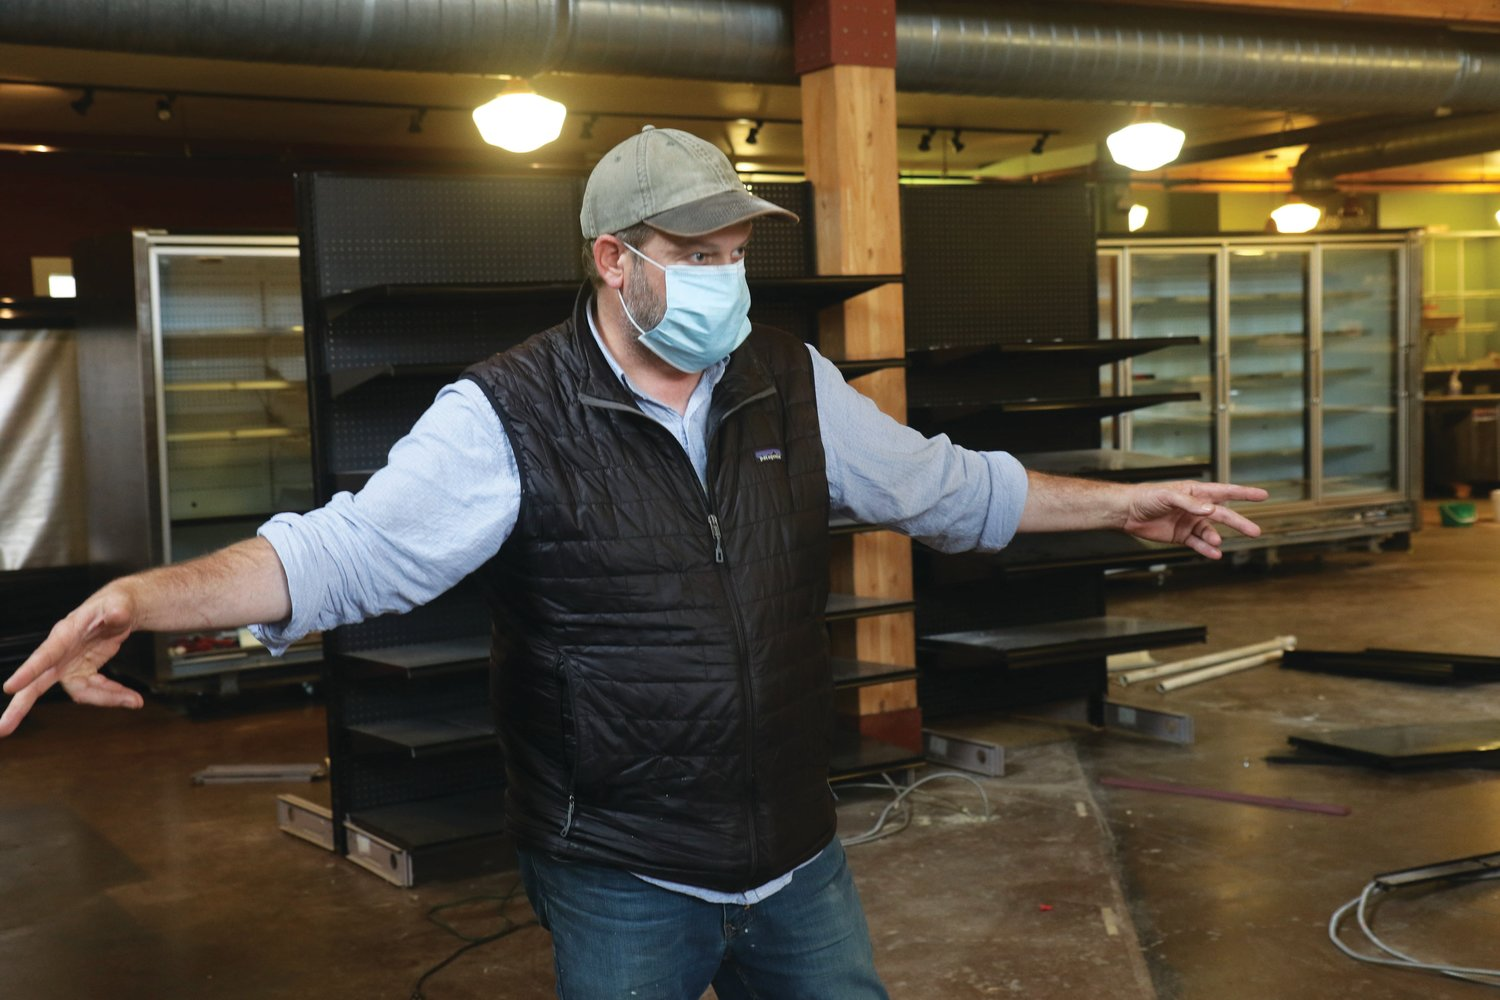 Yos Ligtenberg, the new co-owner of Aldrich's Market, explains his vision for the store's interior layout, which is currently in 